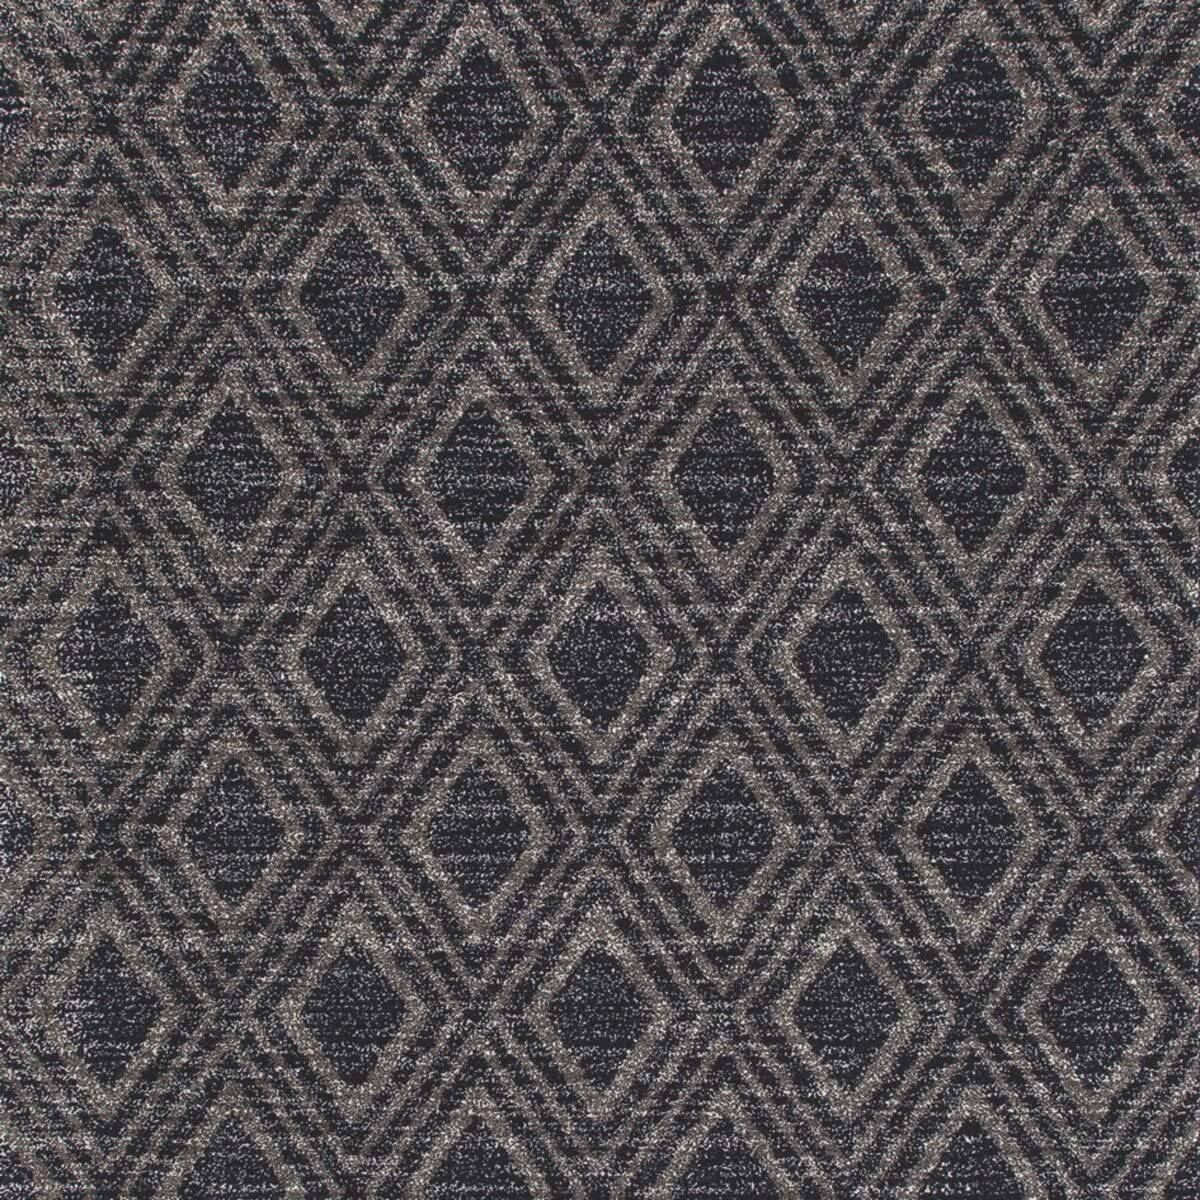 Art Carpet Highline Collection Diamond Grid Woven Square Geometric Area Rug, Square 6 7 , Gray Navy